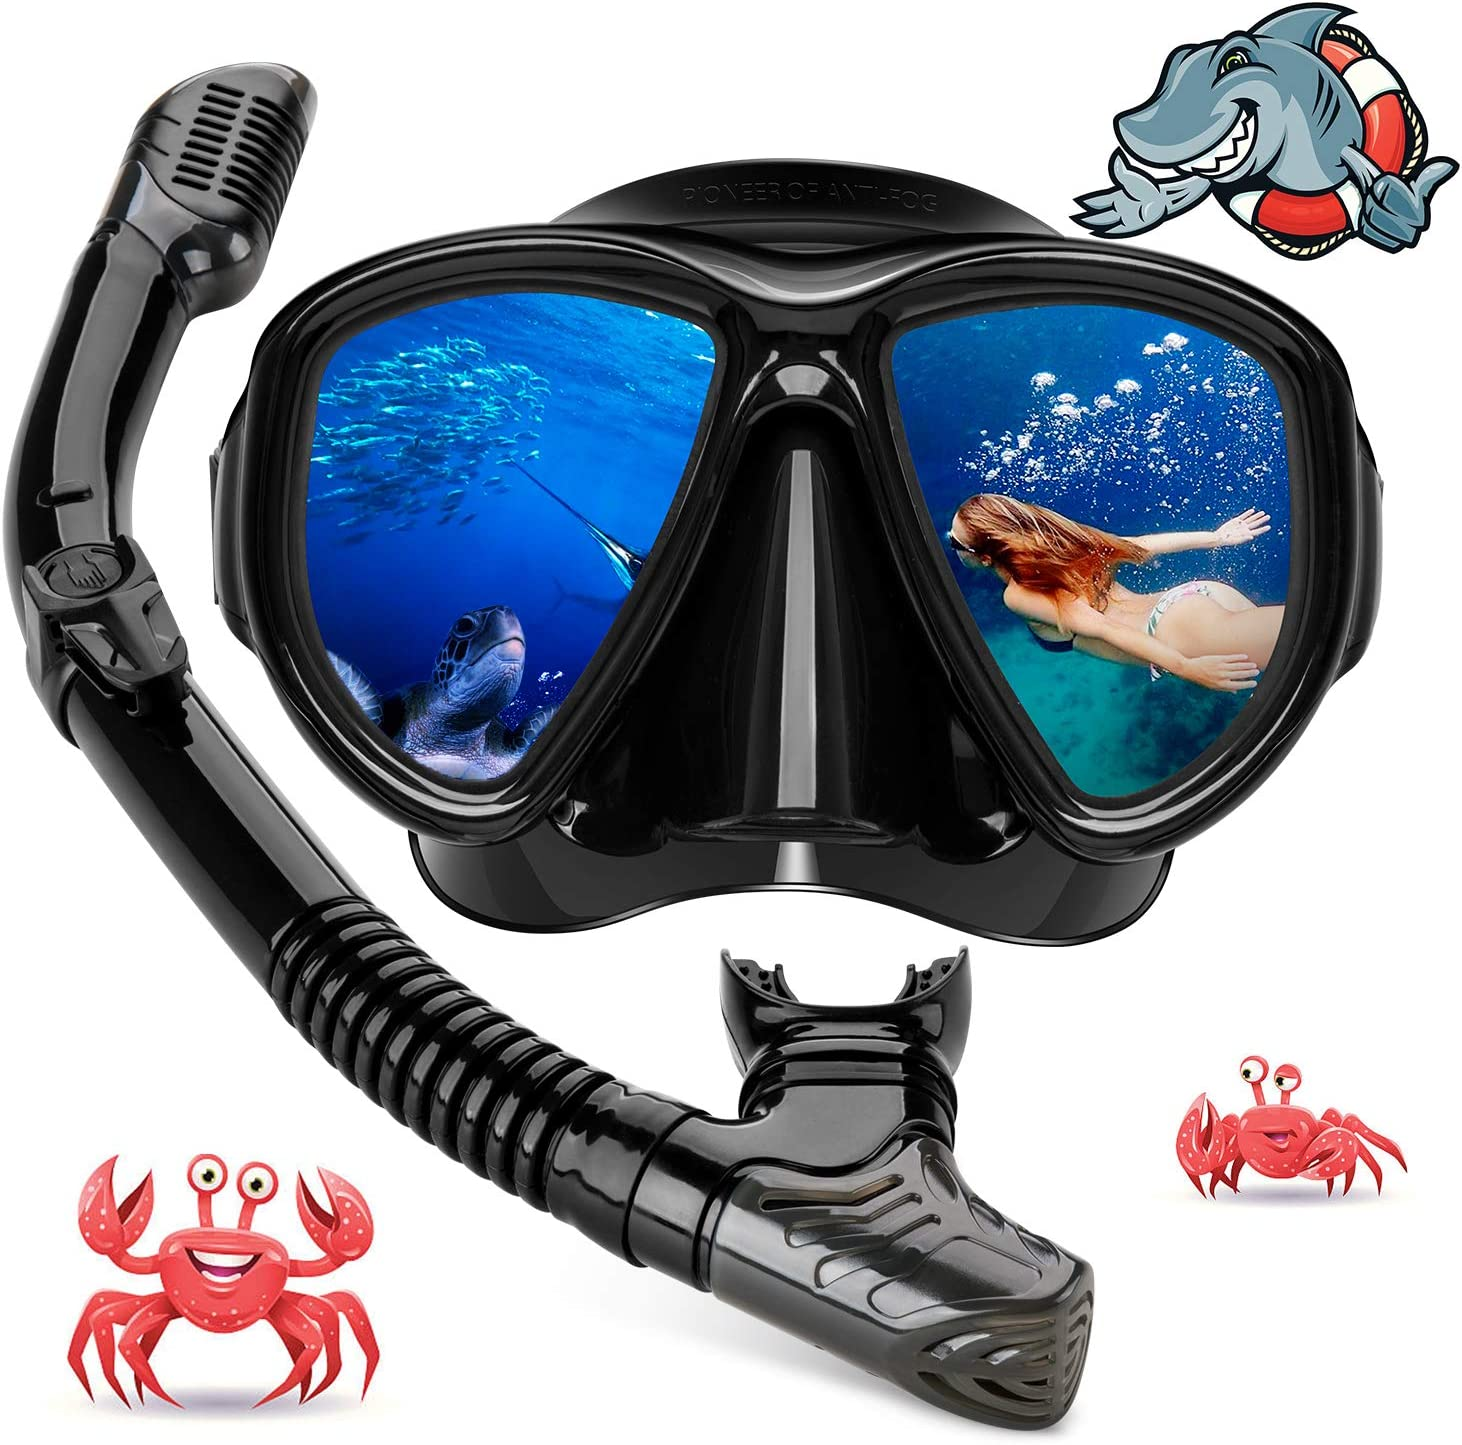 Hiearcool Diving Mask, Diving Goggles Snorkel Set for Adults and Youth,Panoramic View Anti-Fog Lens Anti-Leak Dry Top Snorkel Gear Goggle for Swimming Snorkeling Mask and Scuba Diving Mask